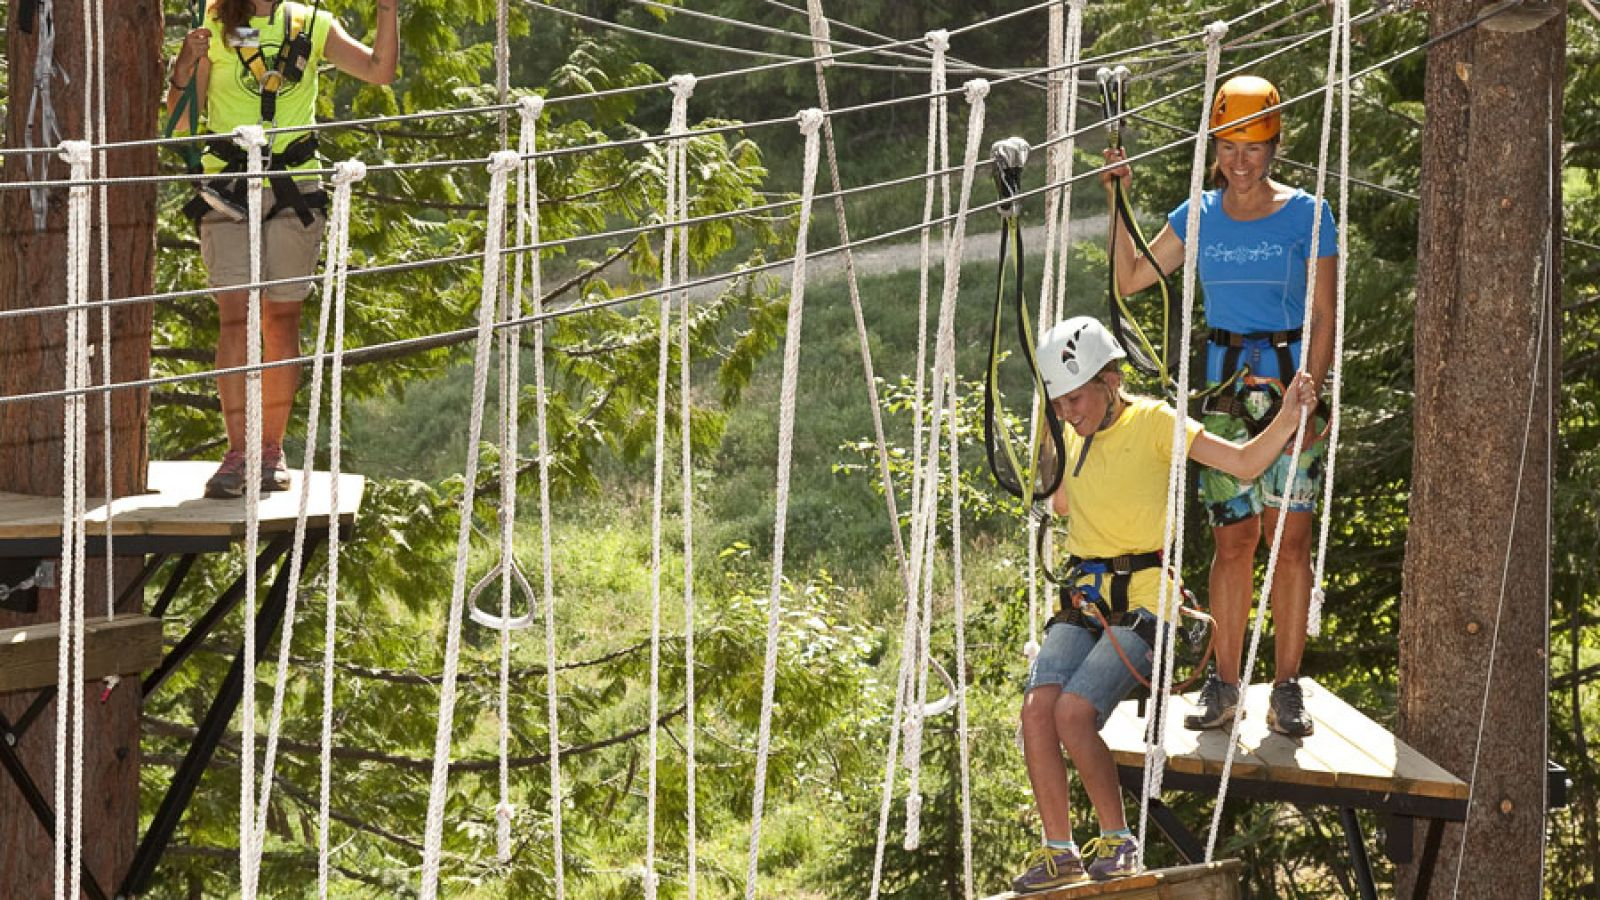 Tree-top Aerial Playground & Zipline at Fernie Resort.